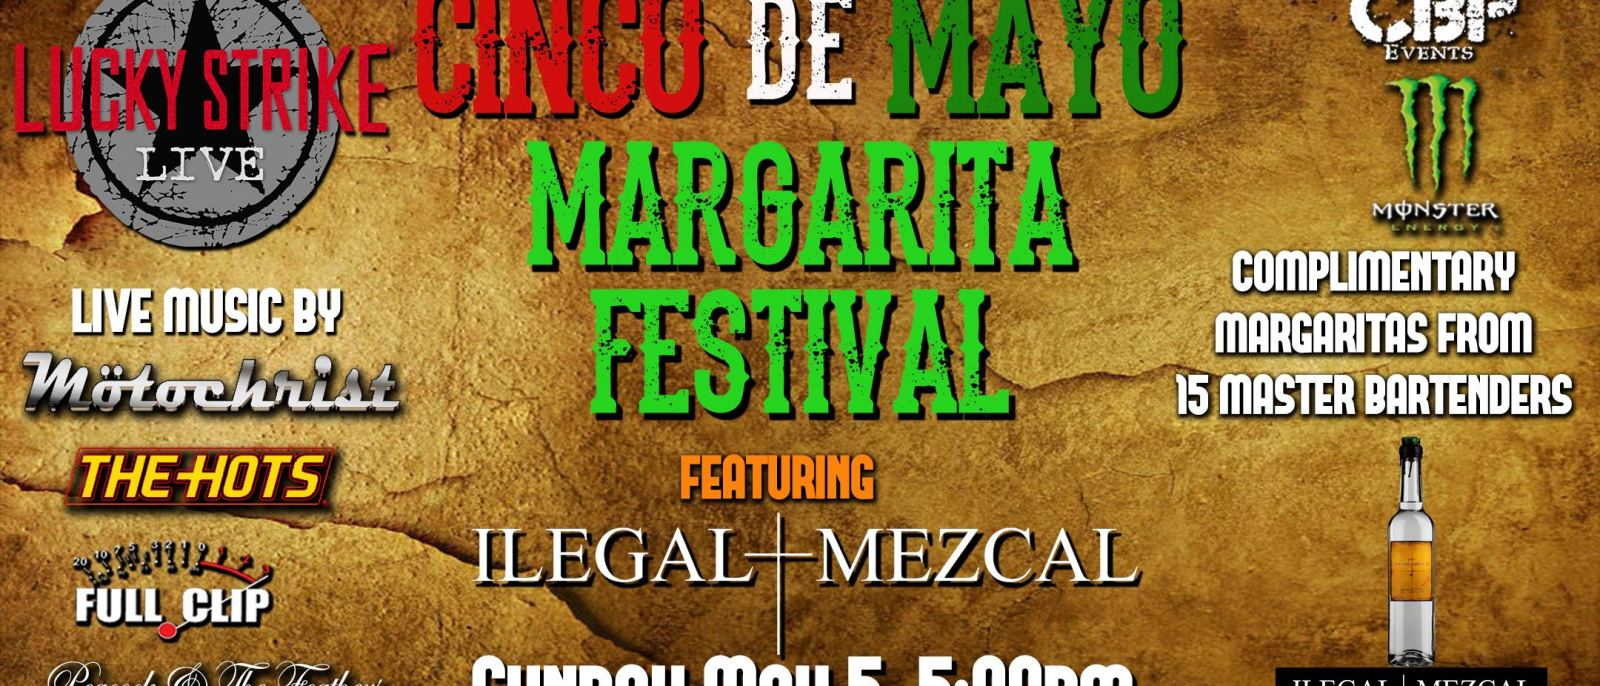 Cinco de Mayo Margarita Festival at Lucky Strike Live in Hollywood